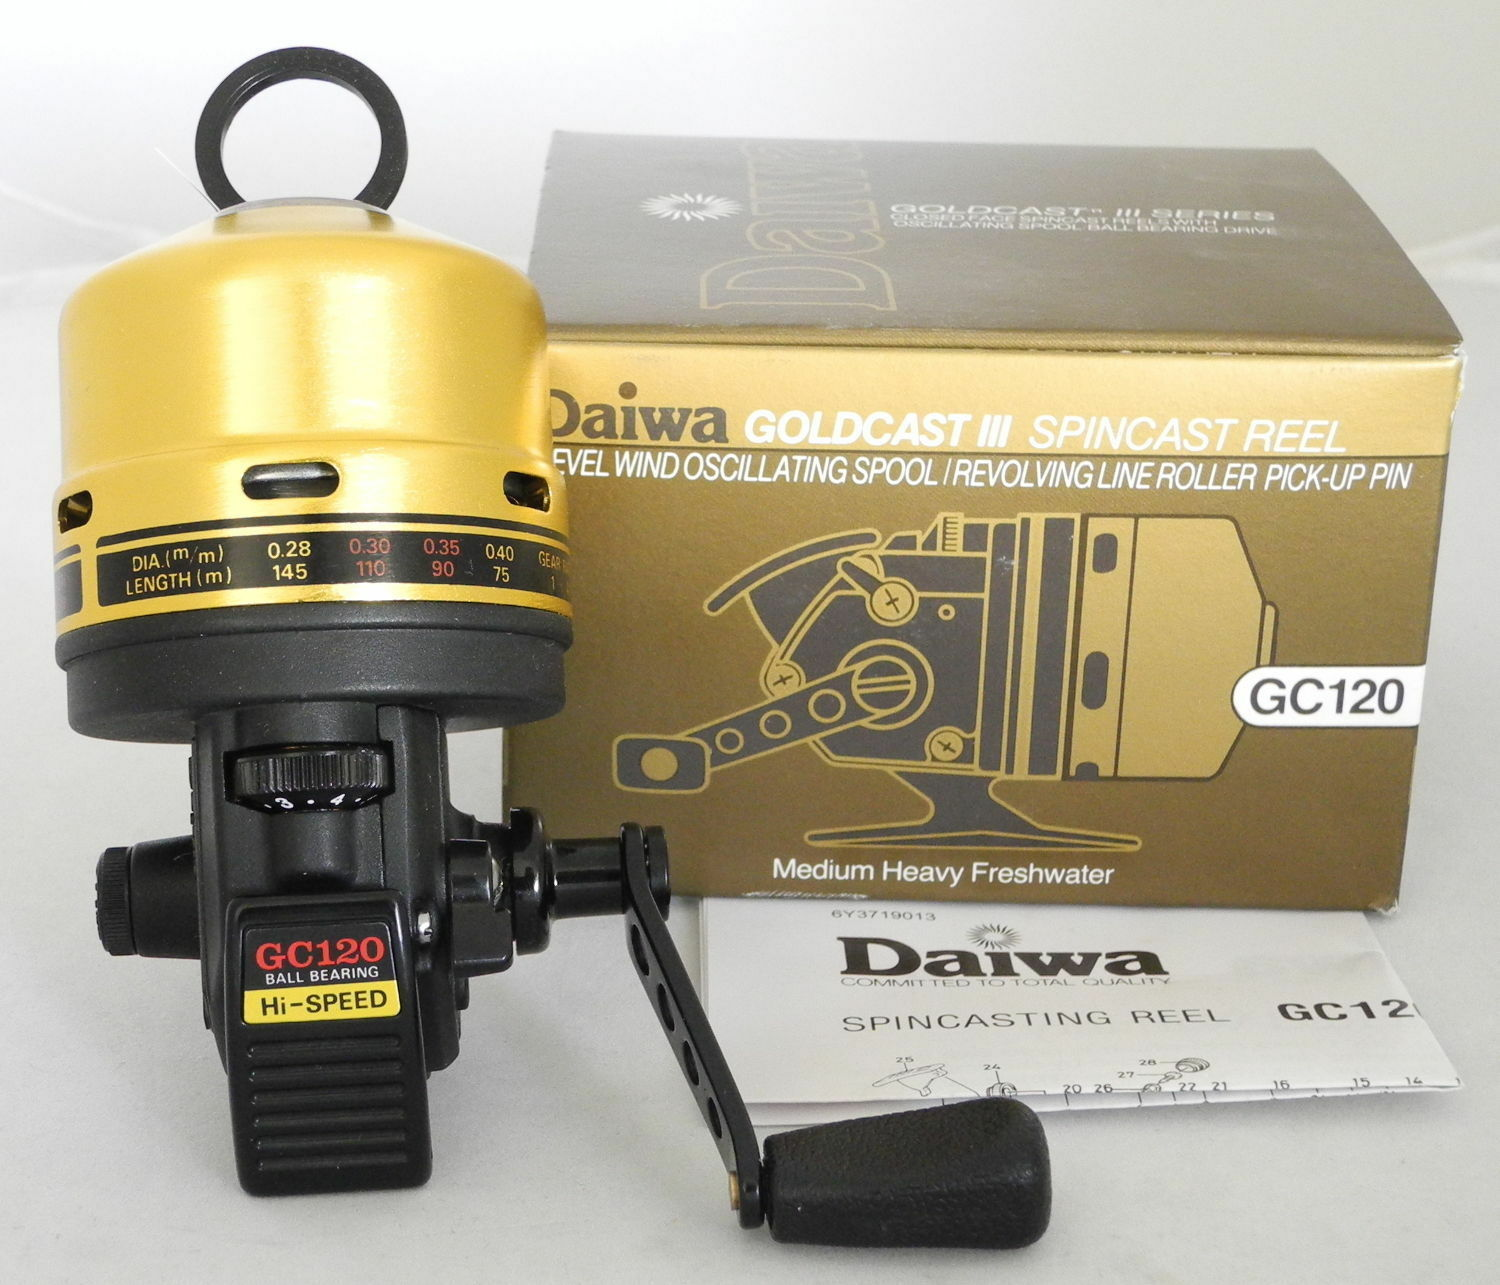 Daiwa goldCast III 4.1 1 Spincast Left Right Hand Fishing Reel - GC120